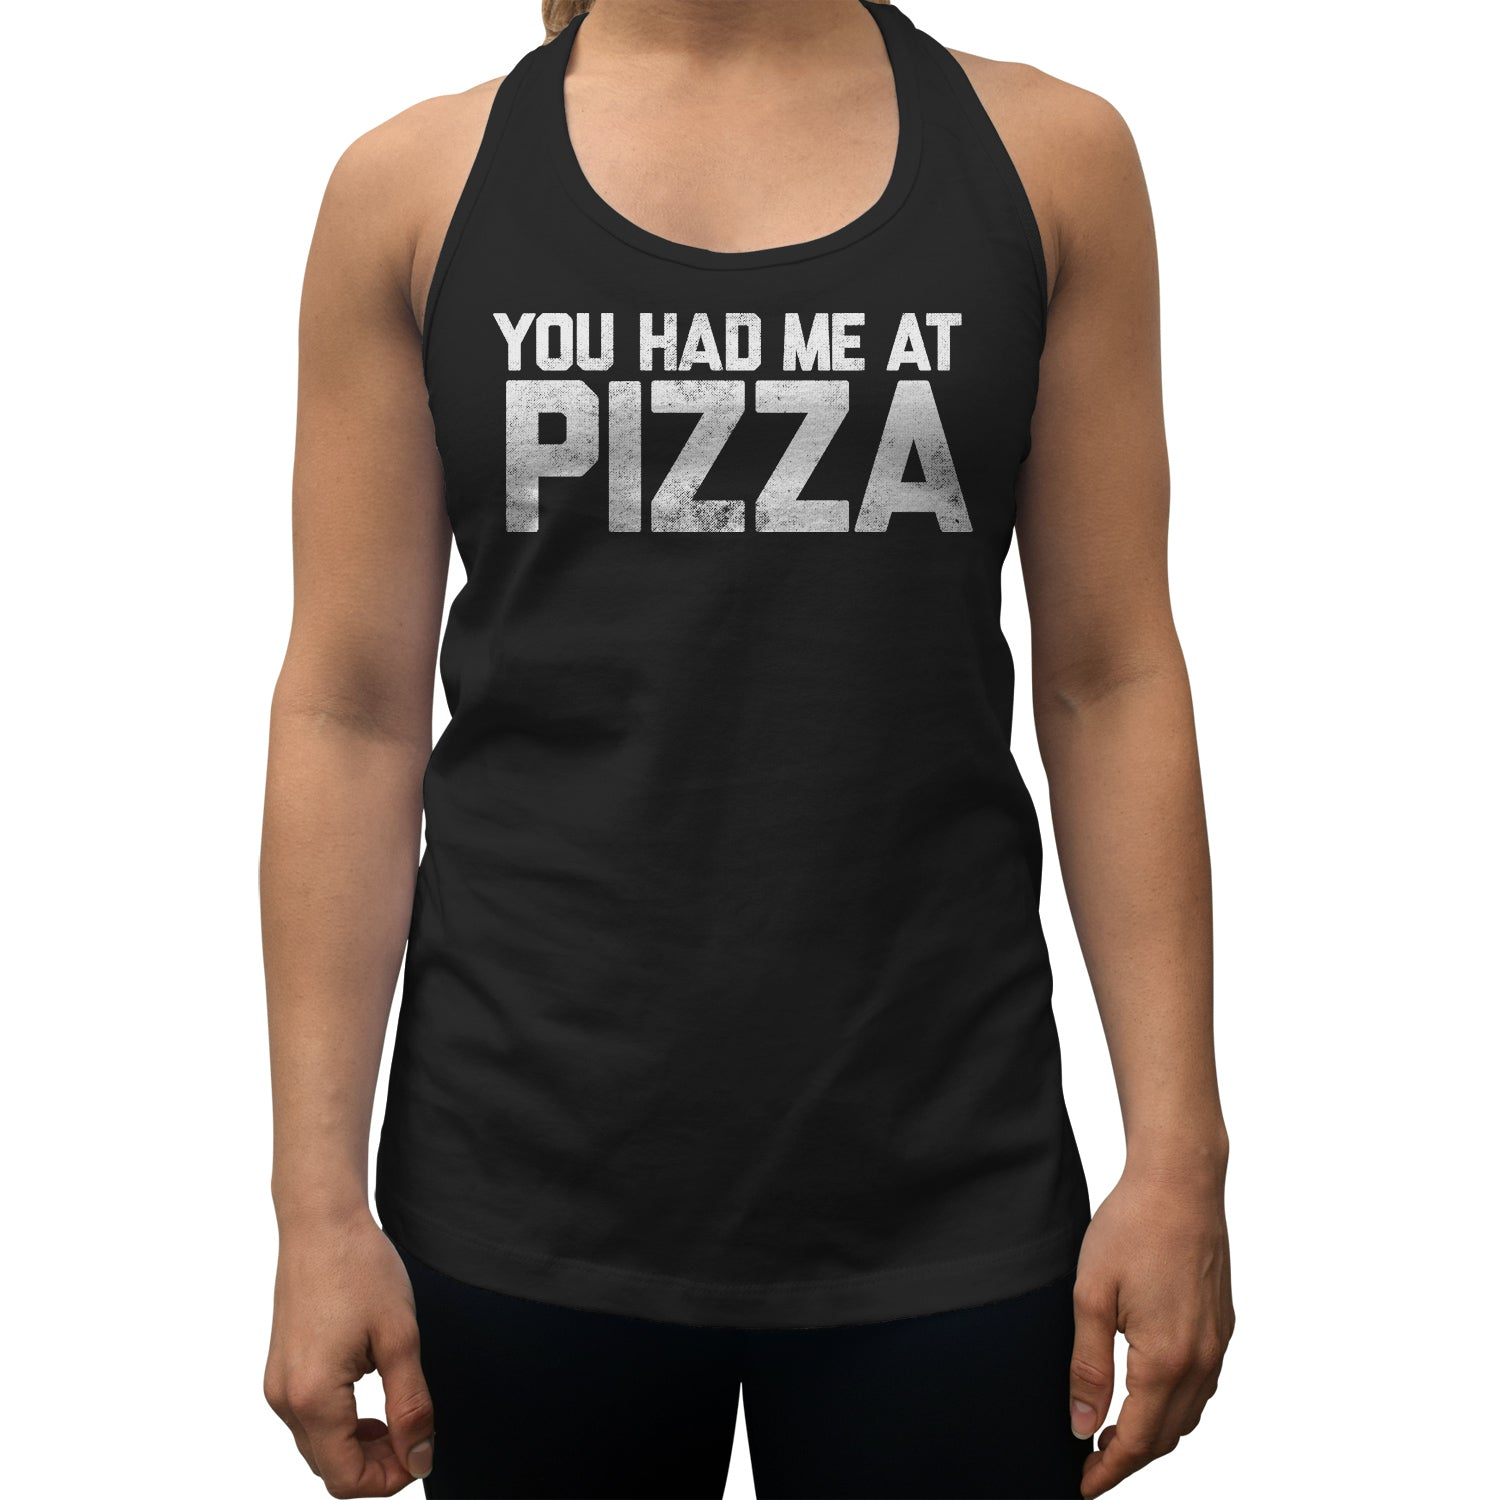 Women's You Had Me at Pizza Racerback Tank Top